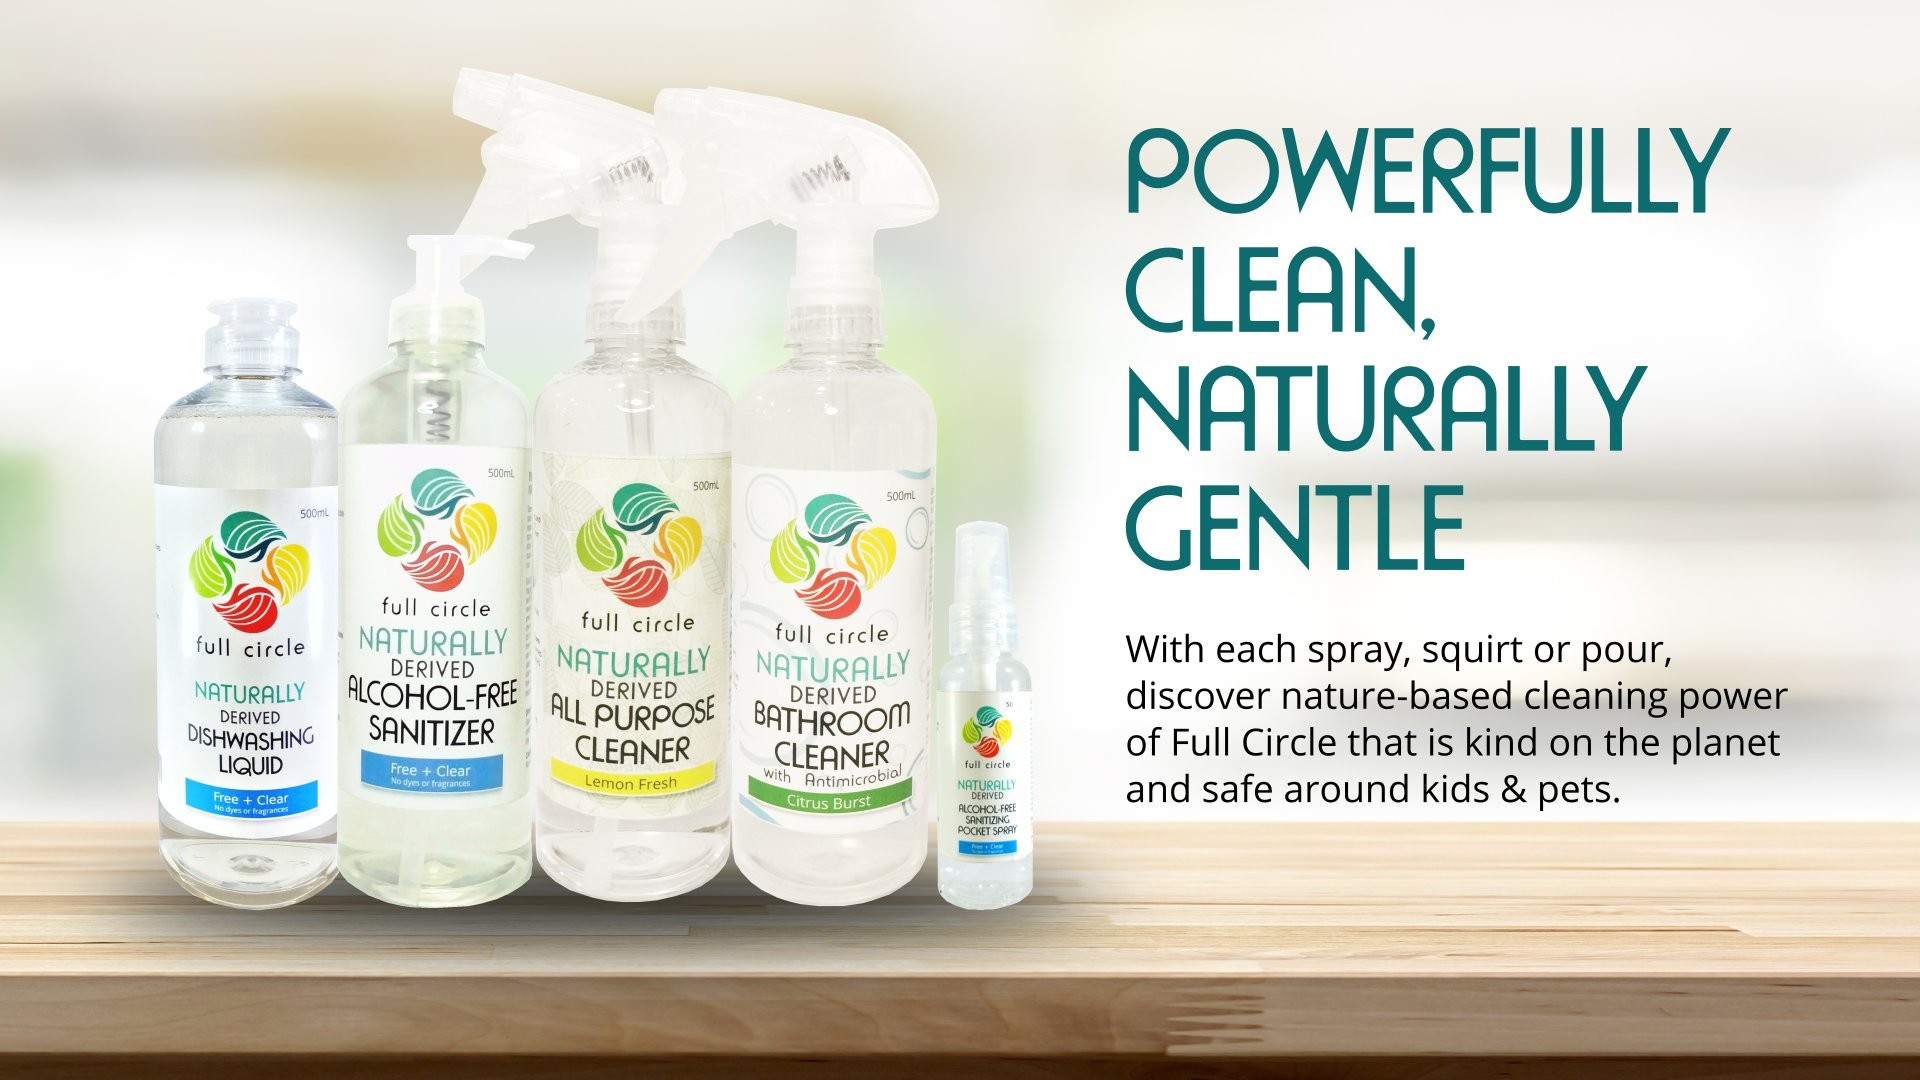 Full Circle Philippines Nature Based Cleaning